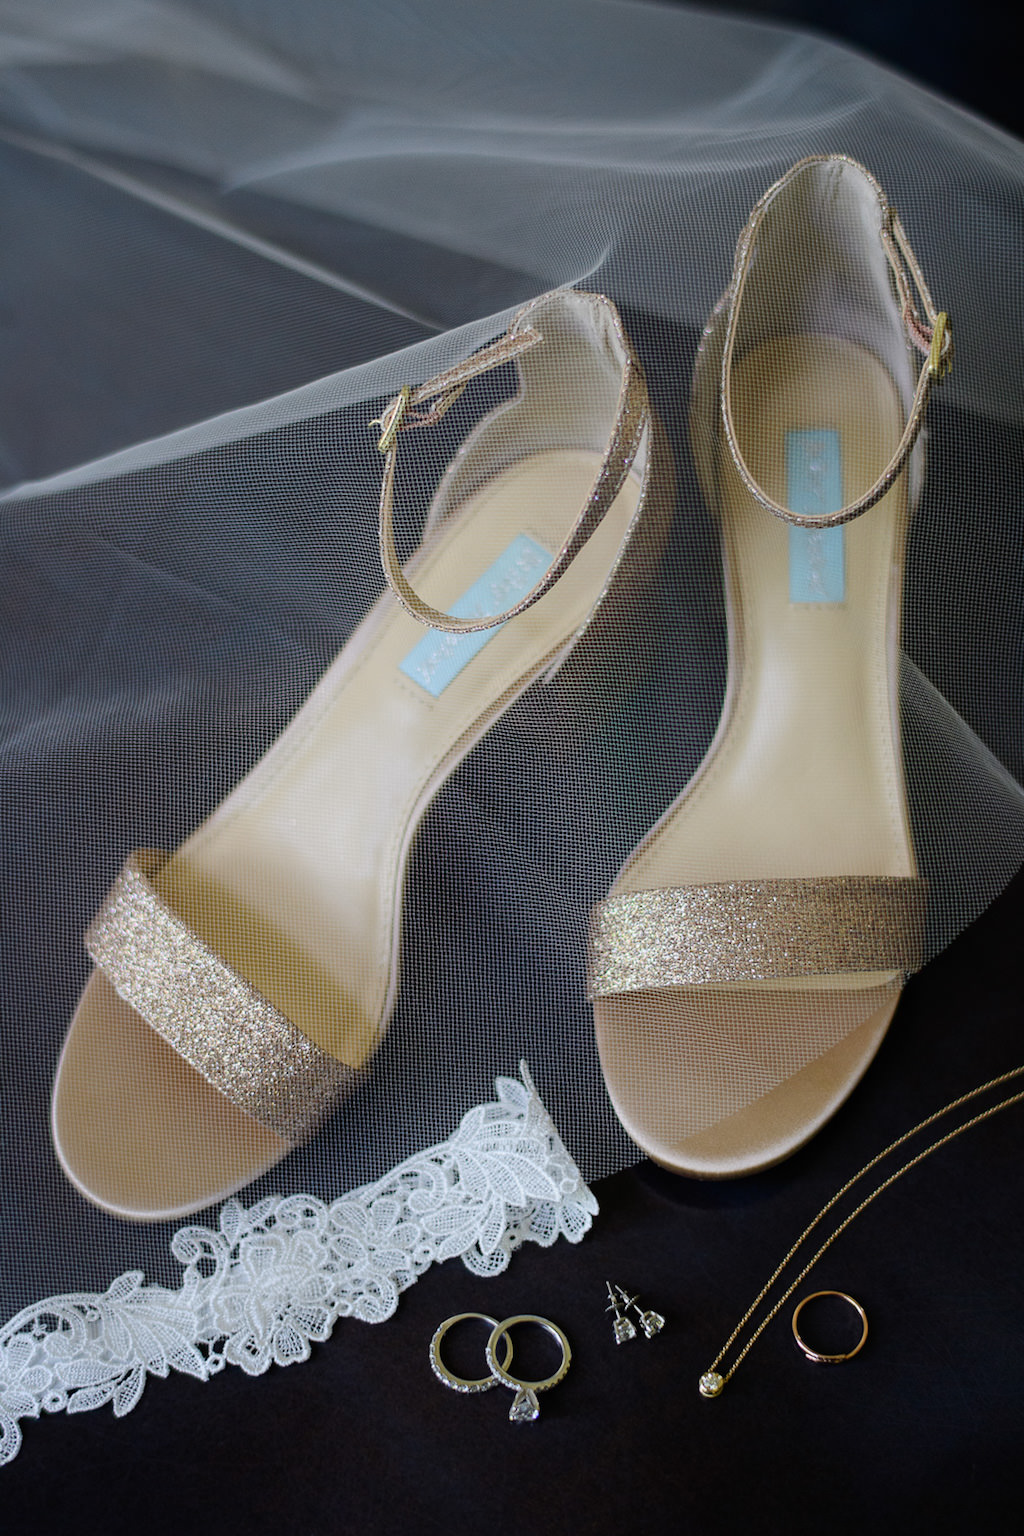 Gold Open Toe Strappy Wedding Shoes, Lace Garter, Wedding Jewelry and Rings